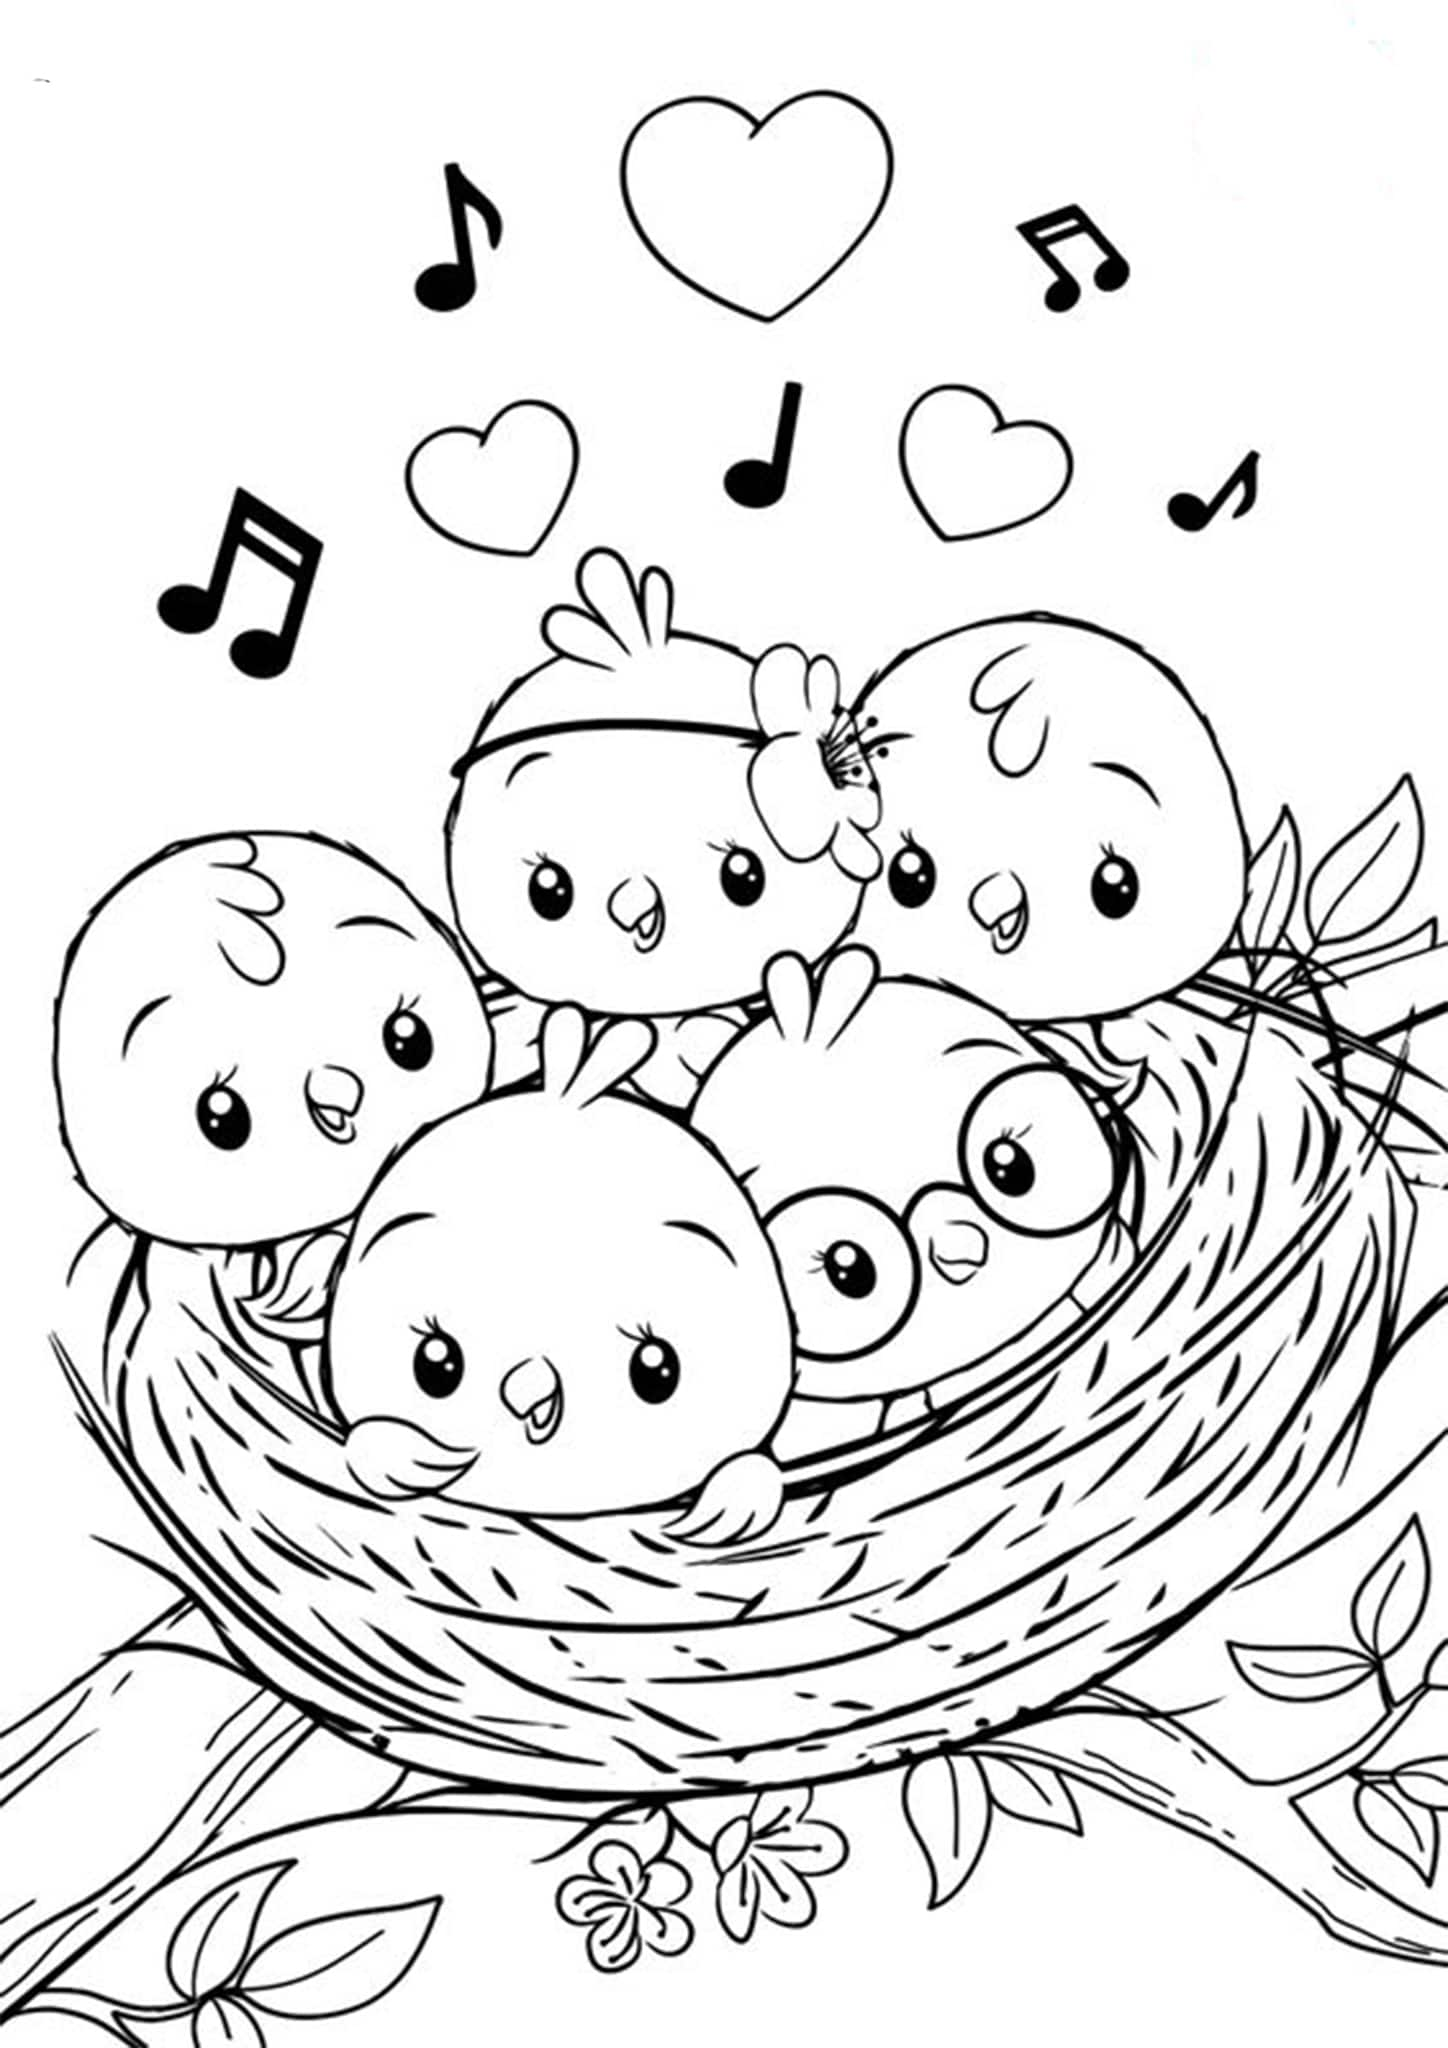 bird color pages free easy to print bird coloring pages tulamama bird pages color